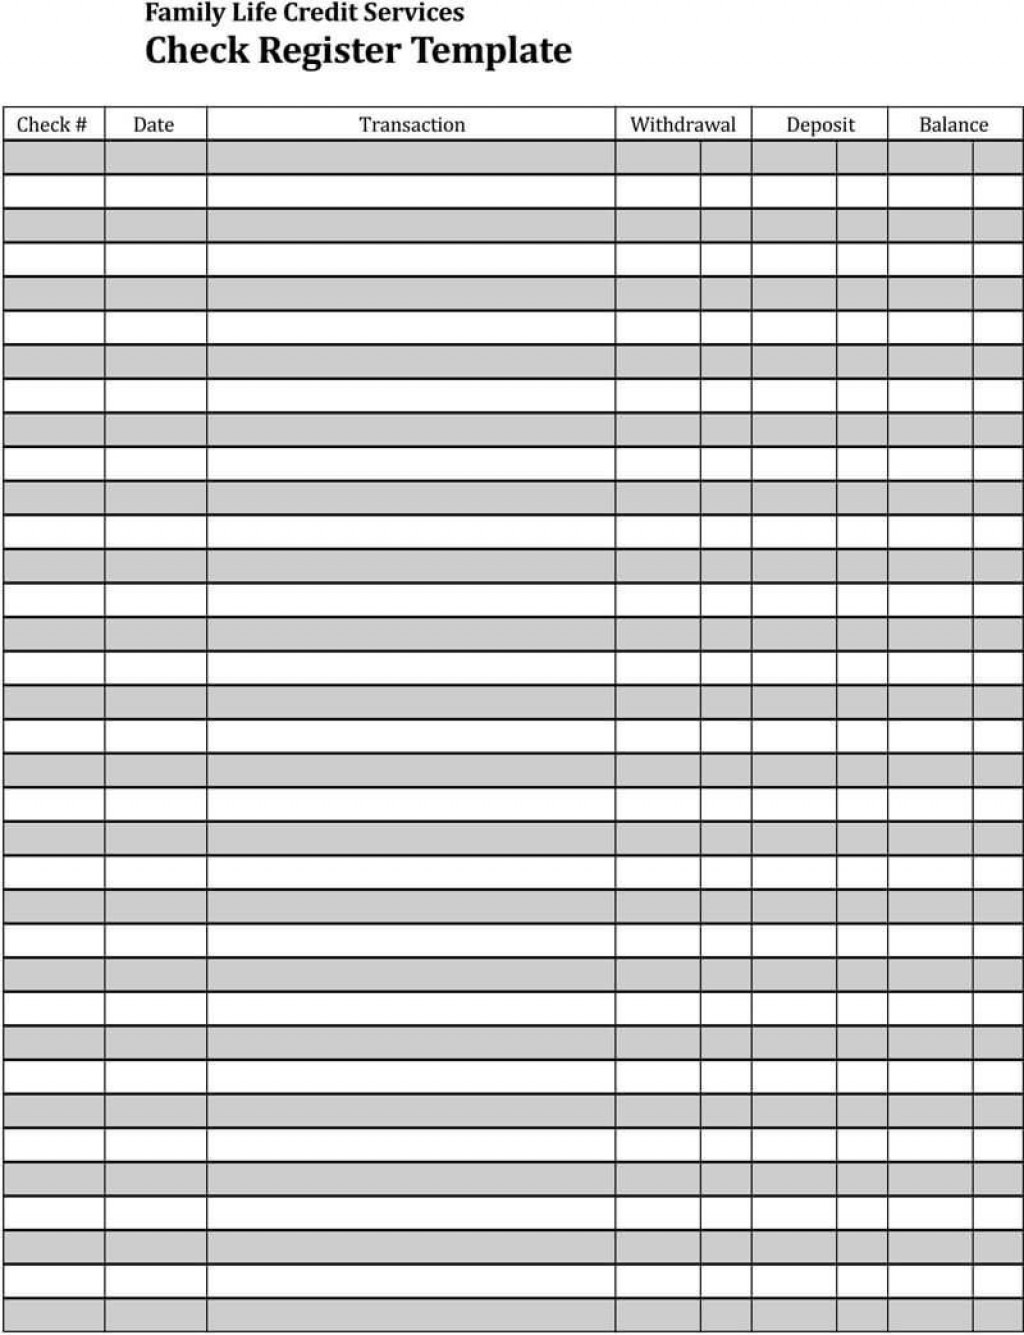 009 Awful Checkbook Register Template Excel Design  Check 2007 Balance 2003Large